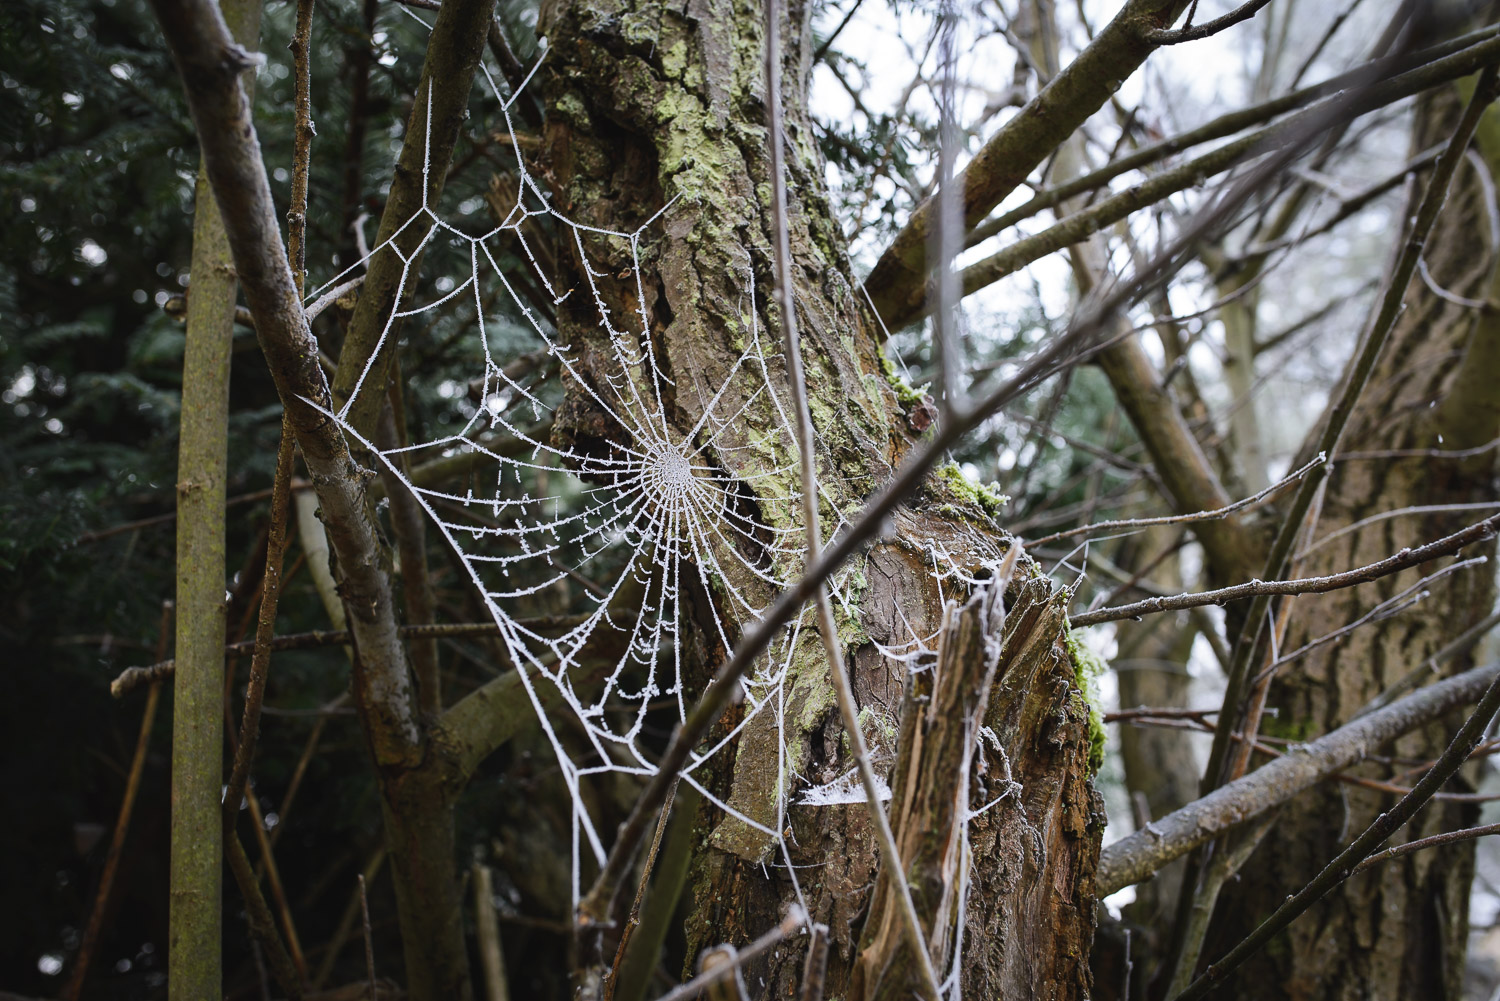 An impressive, frosty cobweb in the Rifle Range Nature Reserve, Worcestershire.